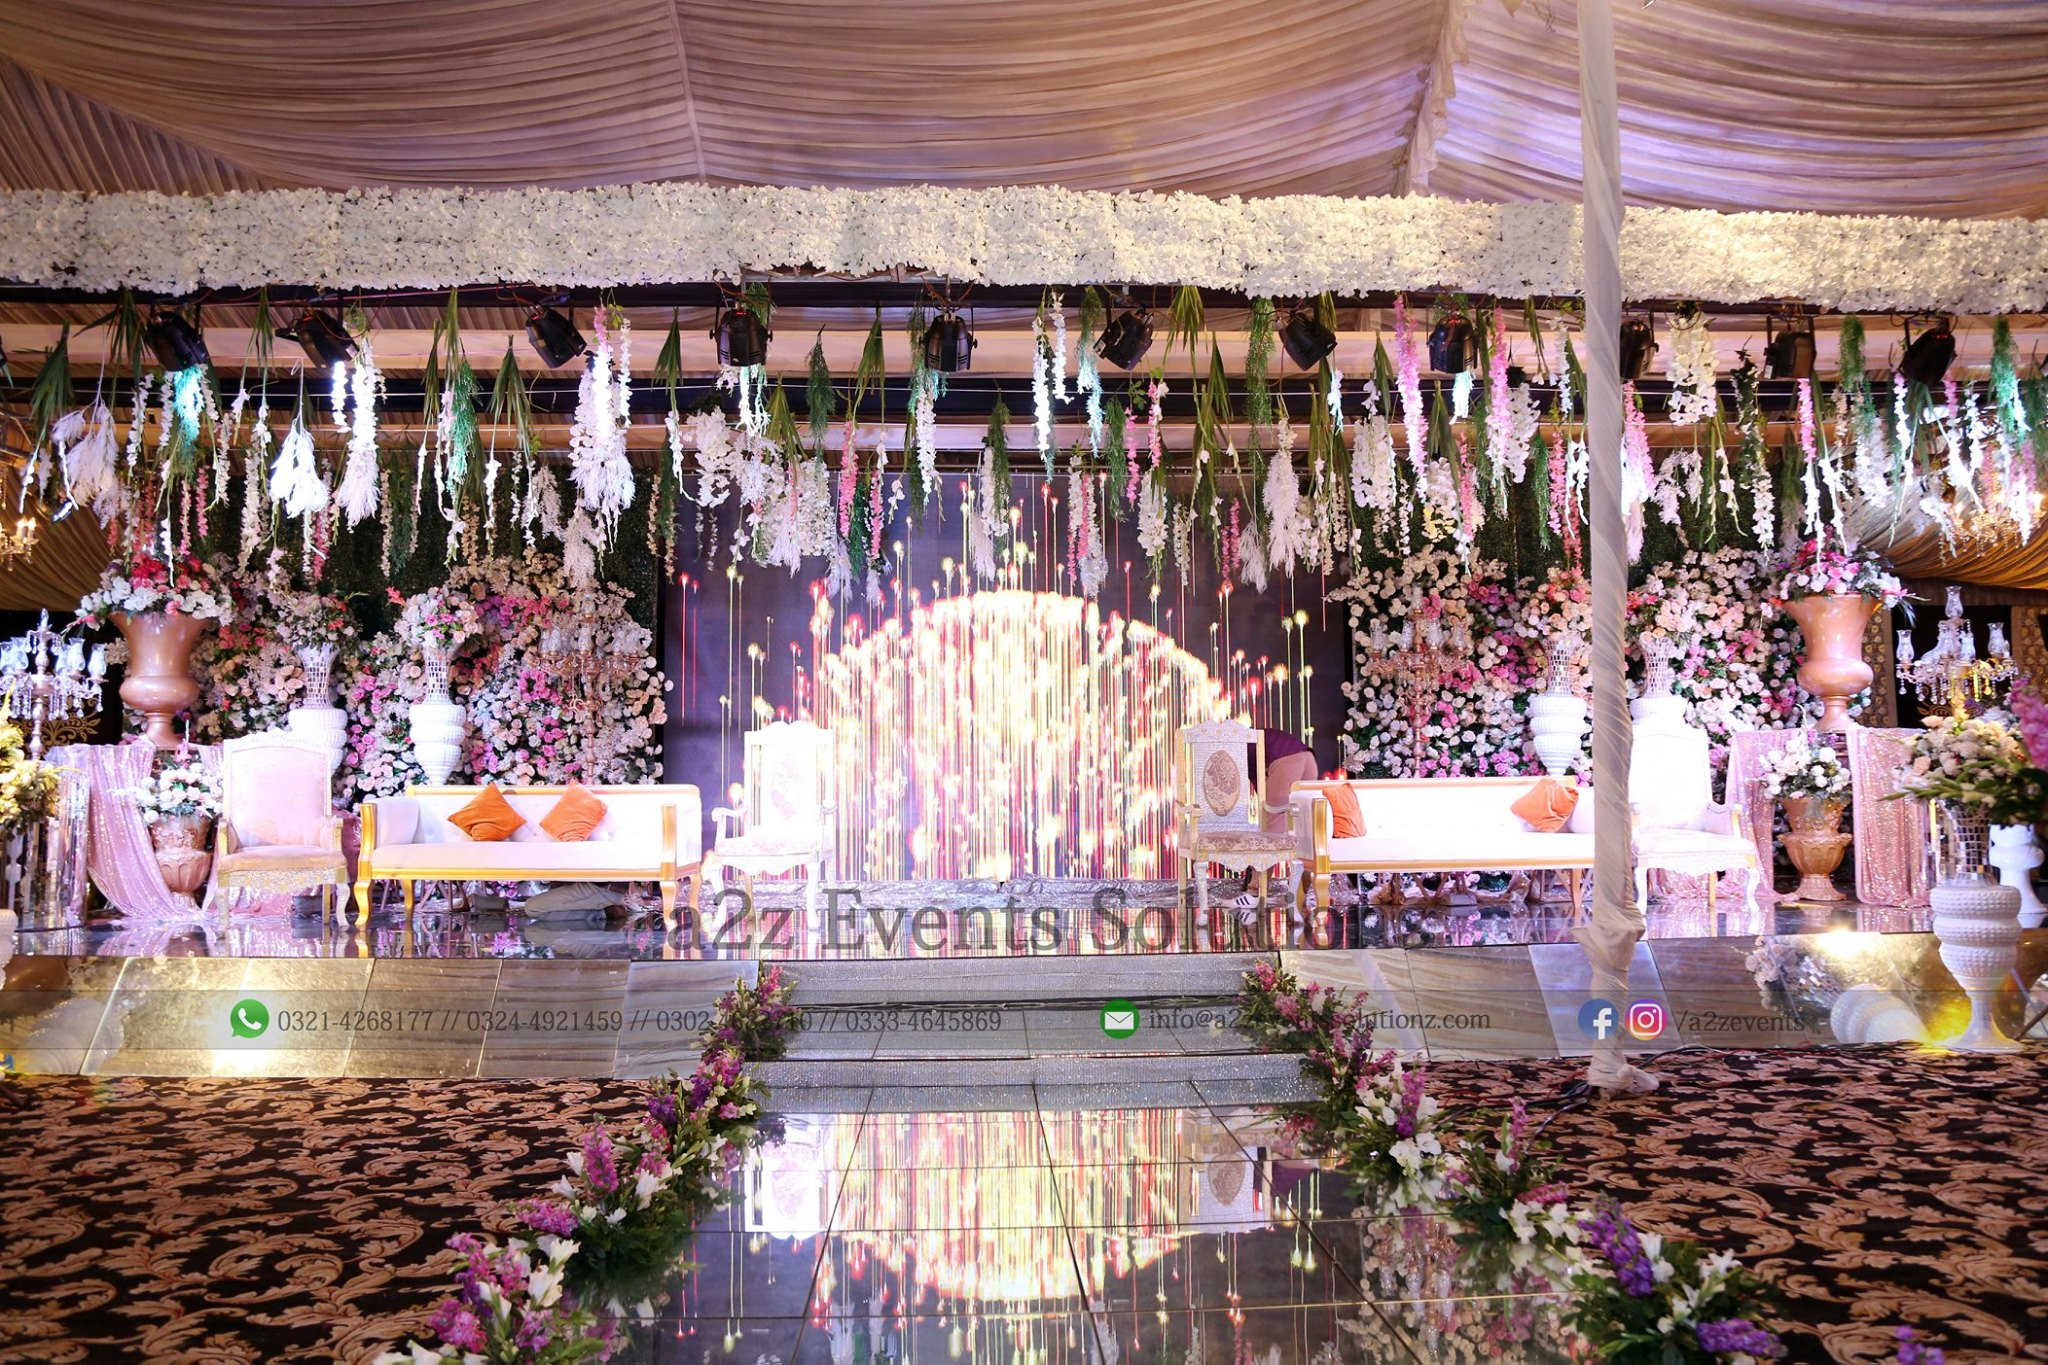 grand stage, walima stage, vip stage, wedding stage